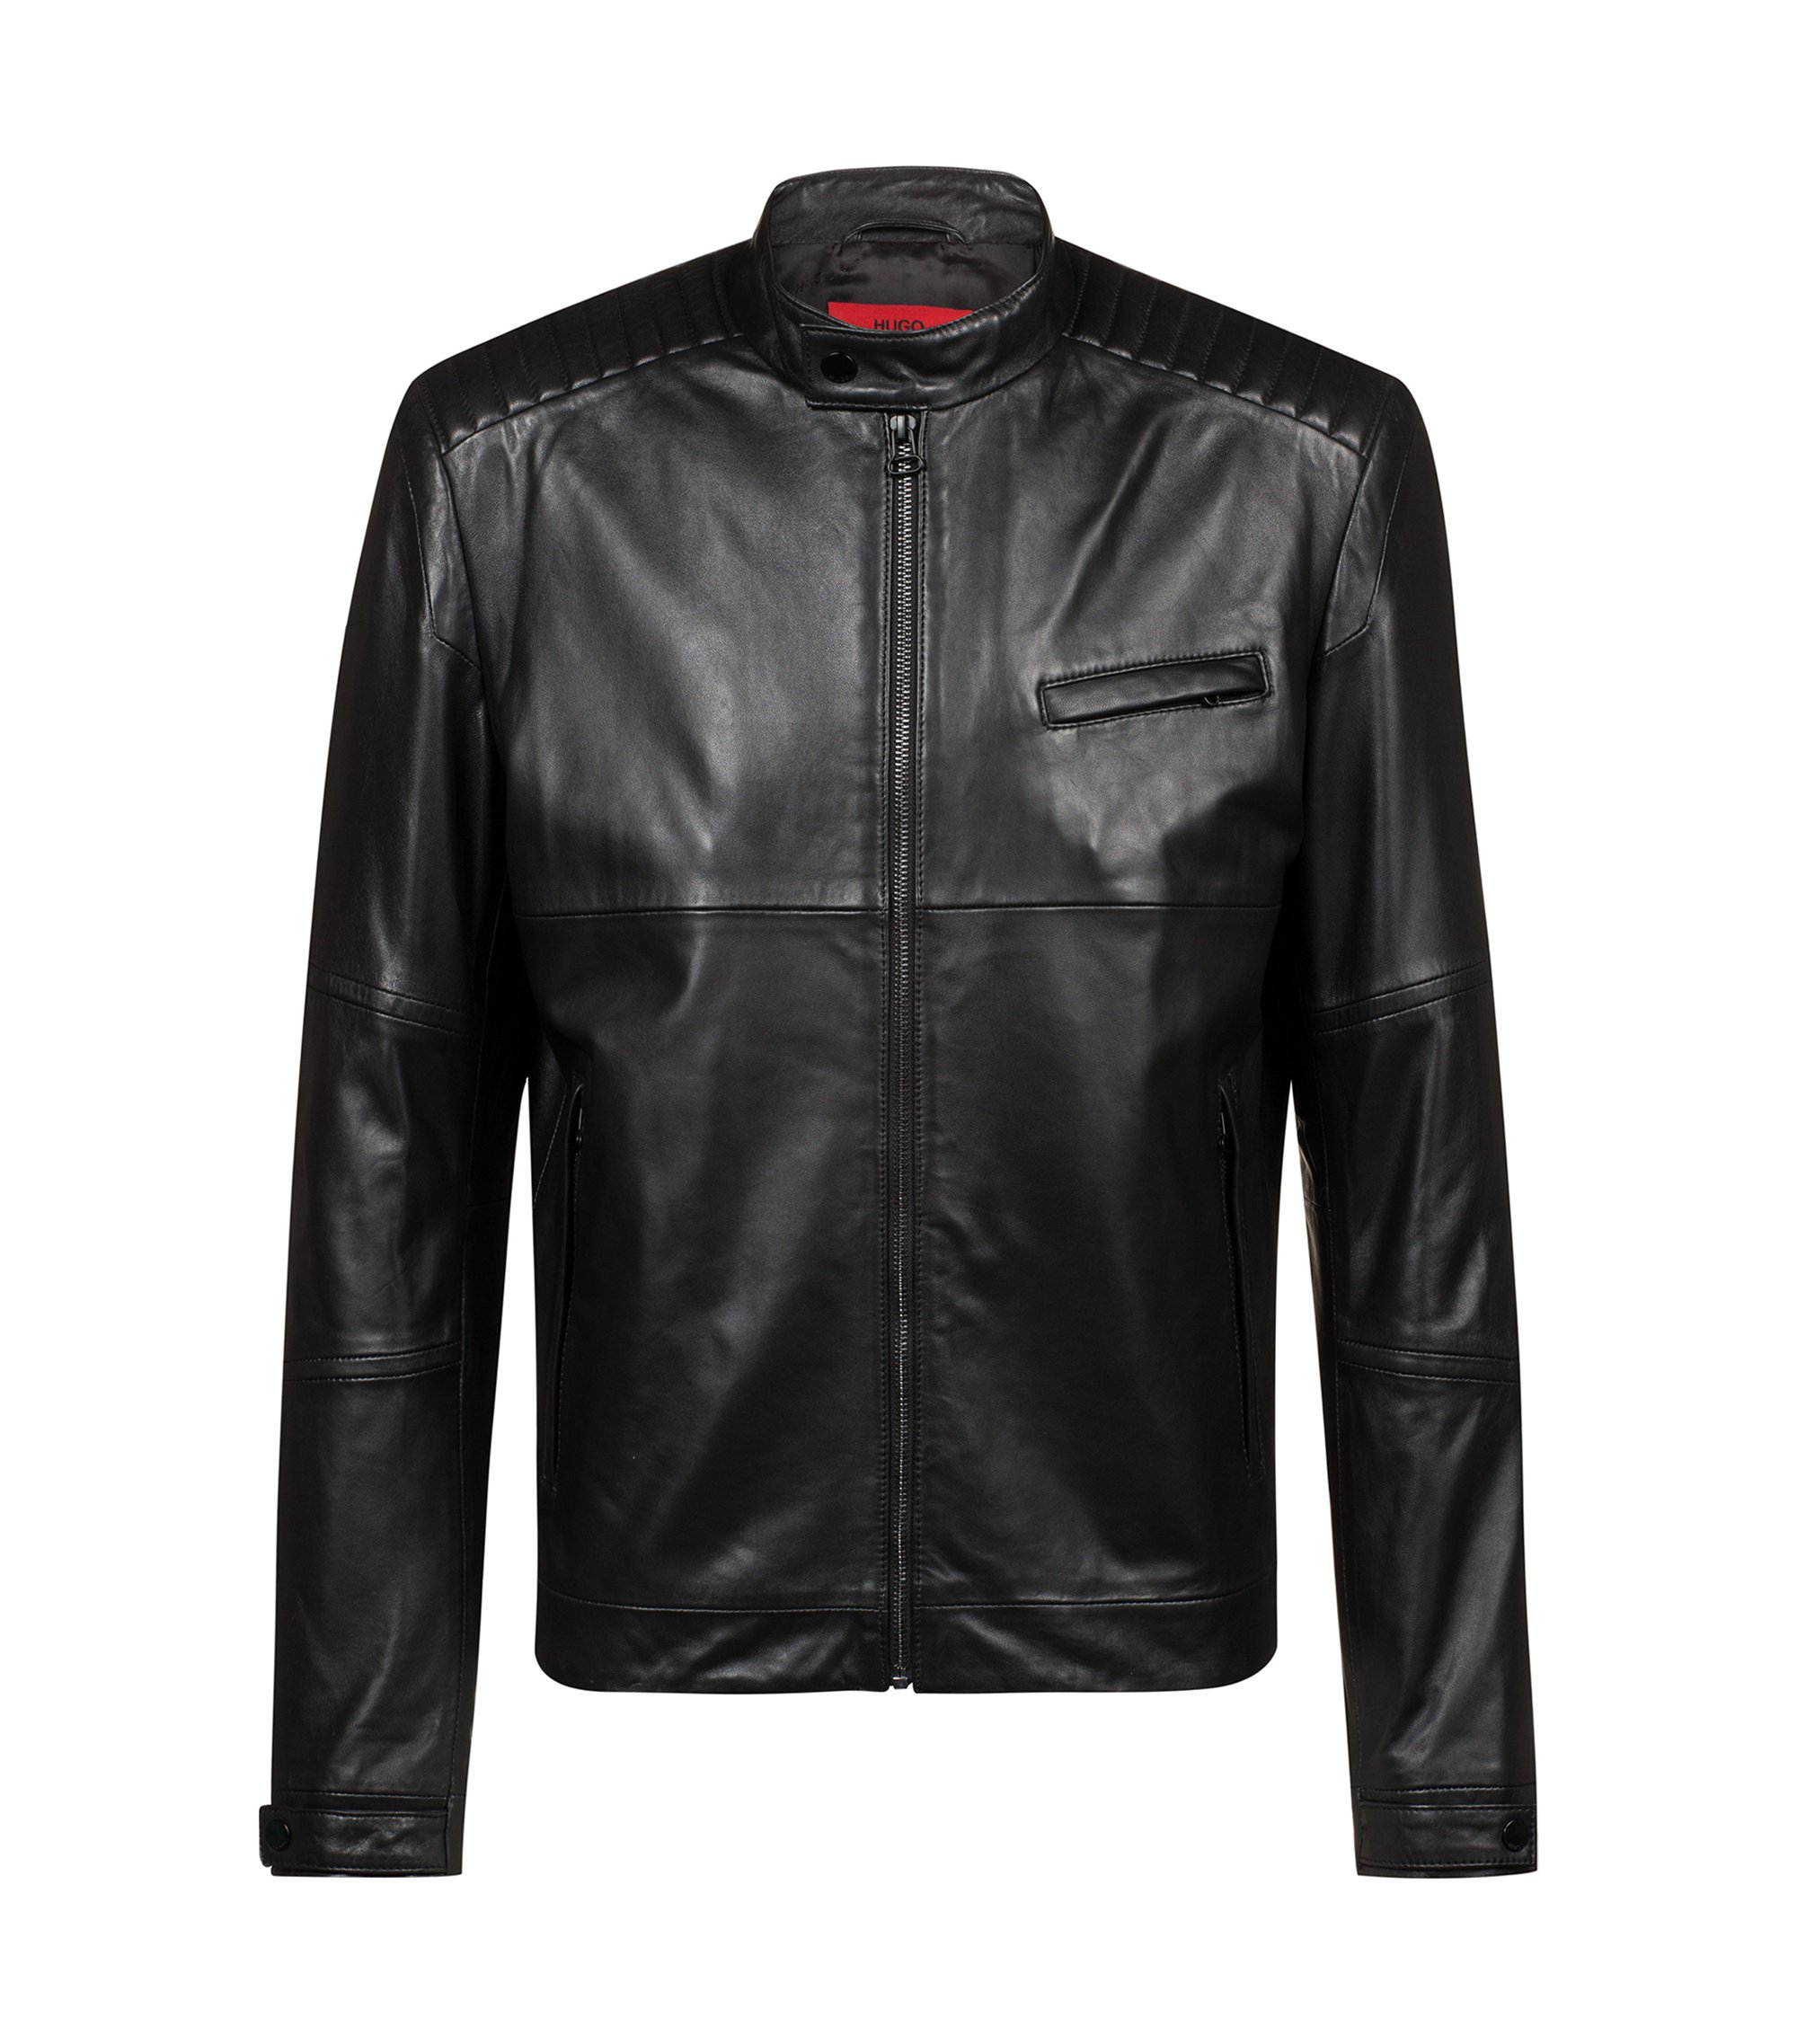 Bits & Bytes Capsule leather jacket with quilting details, Black